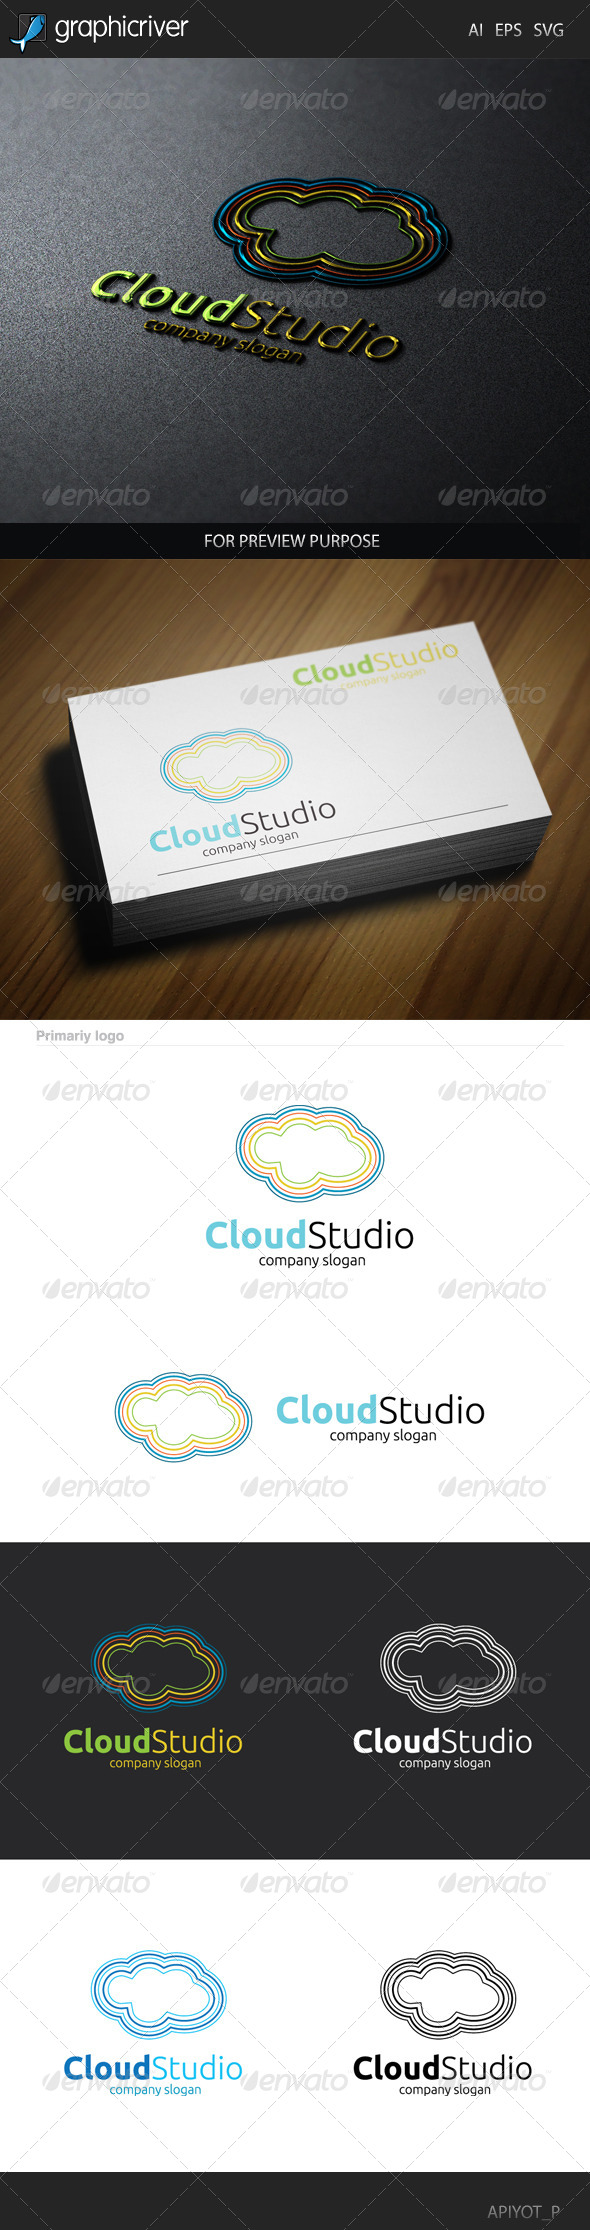 GraphicRiver Cloud Studio Logo 8537462